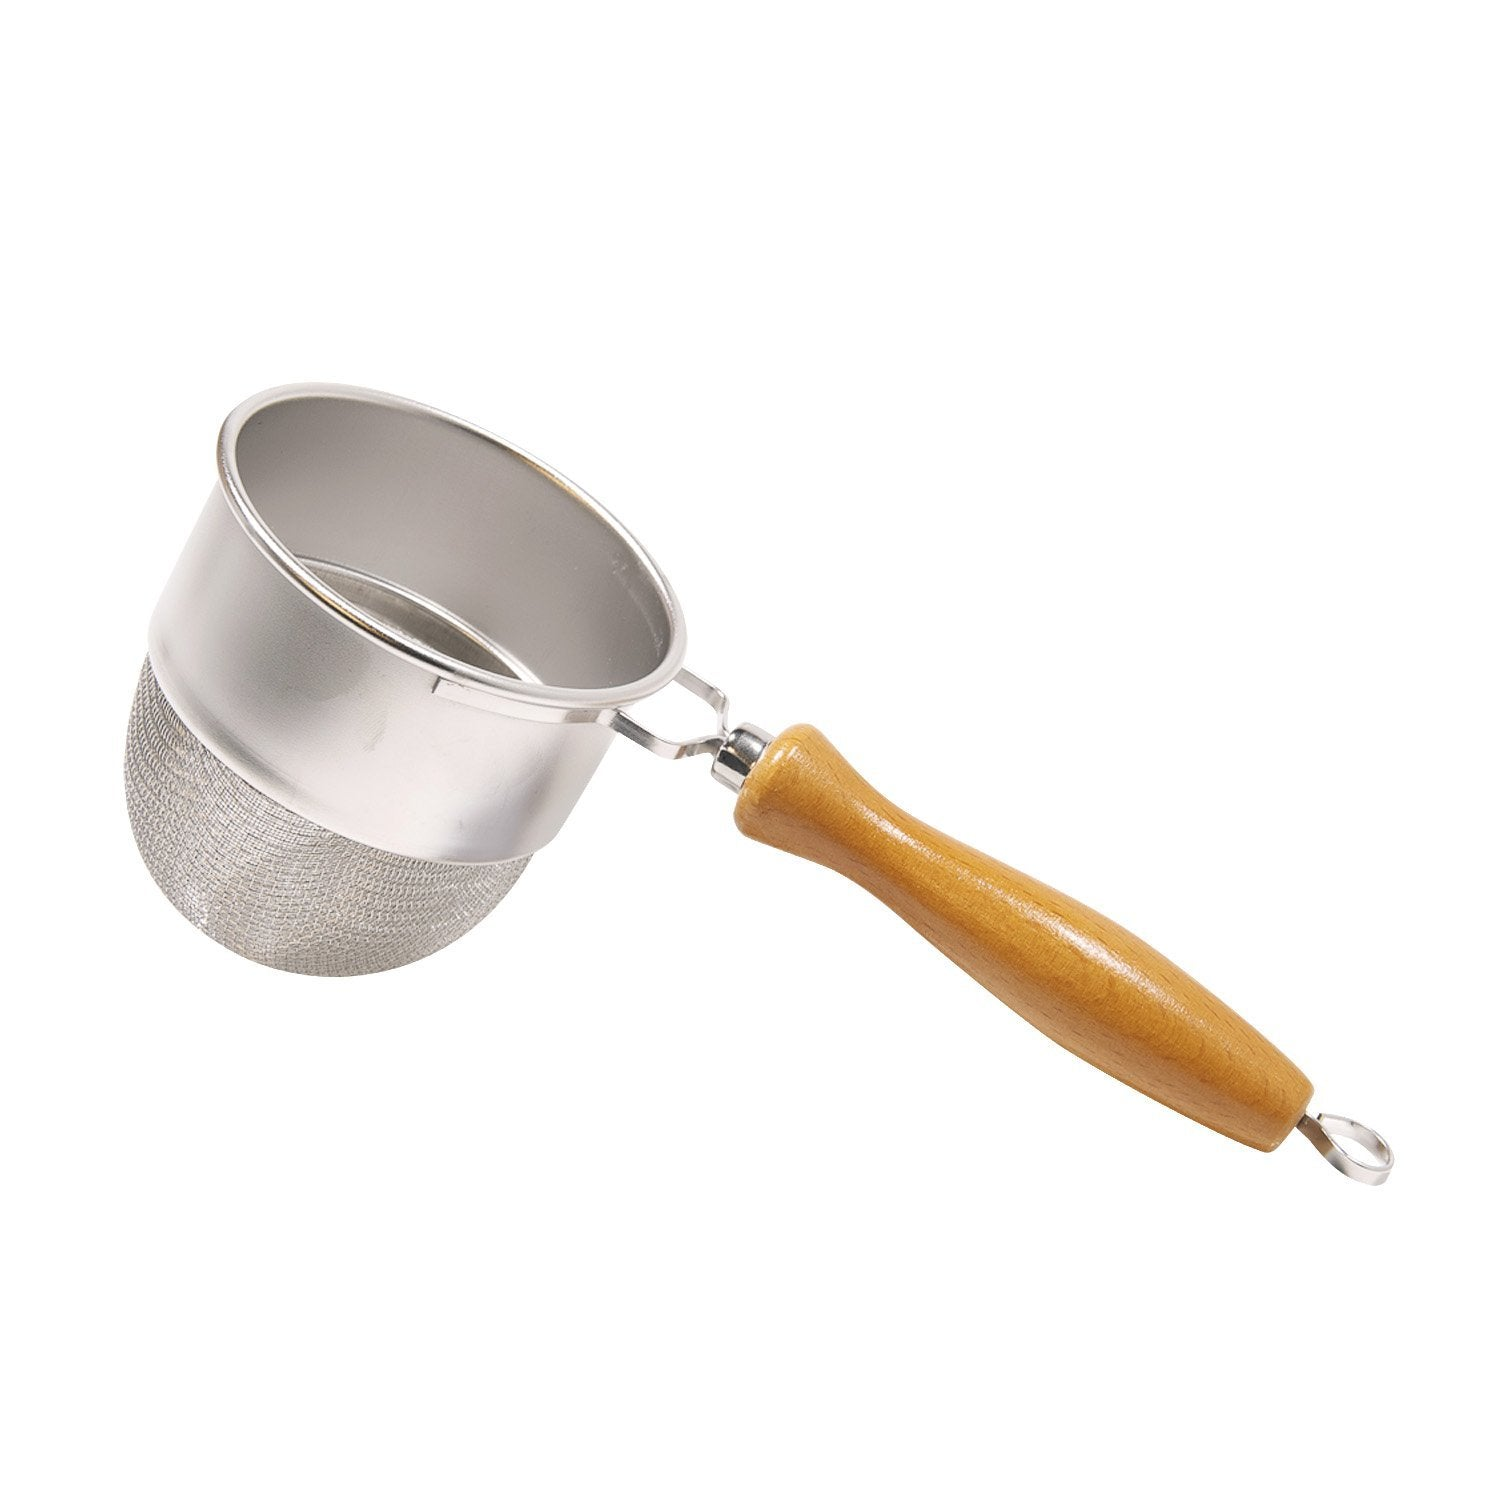 Stainless Steel Tea Strainer with Wooden Handle